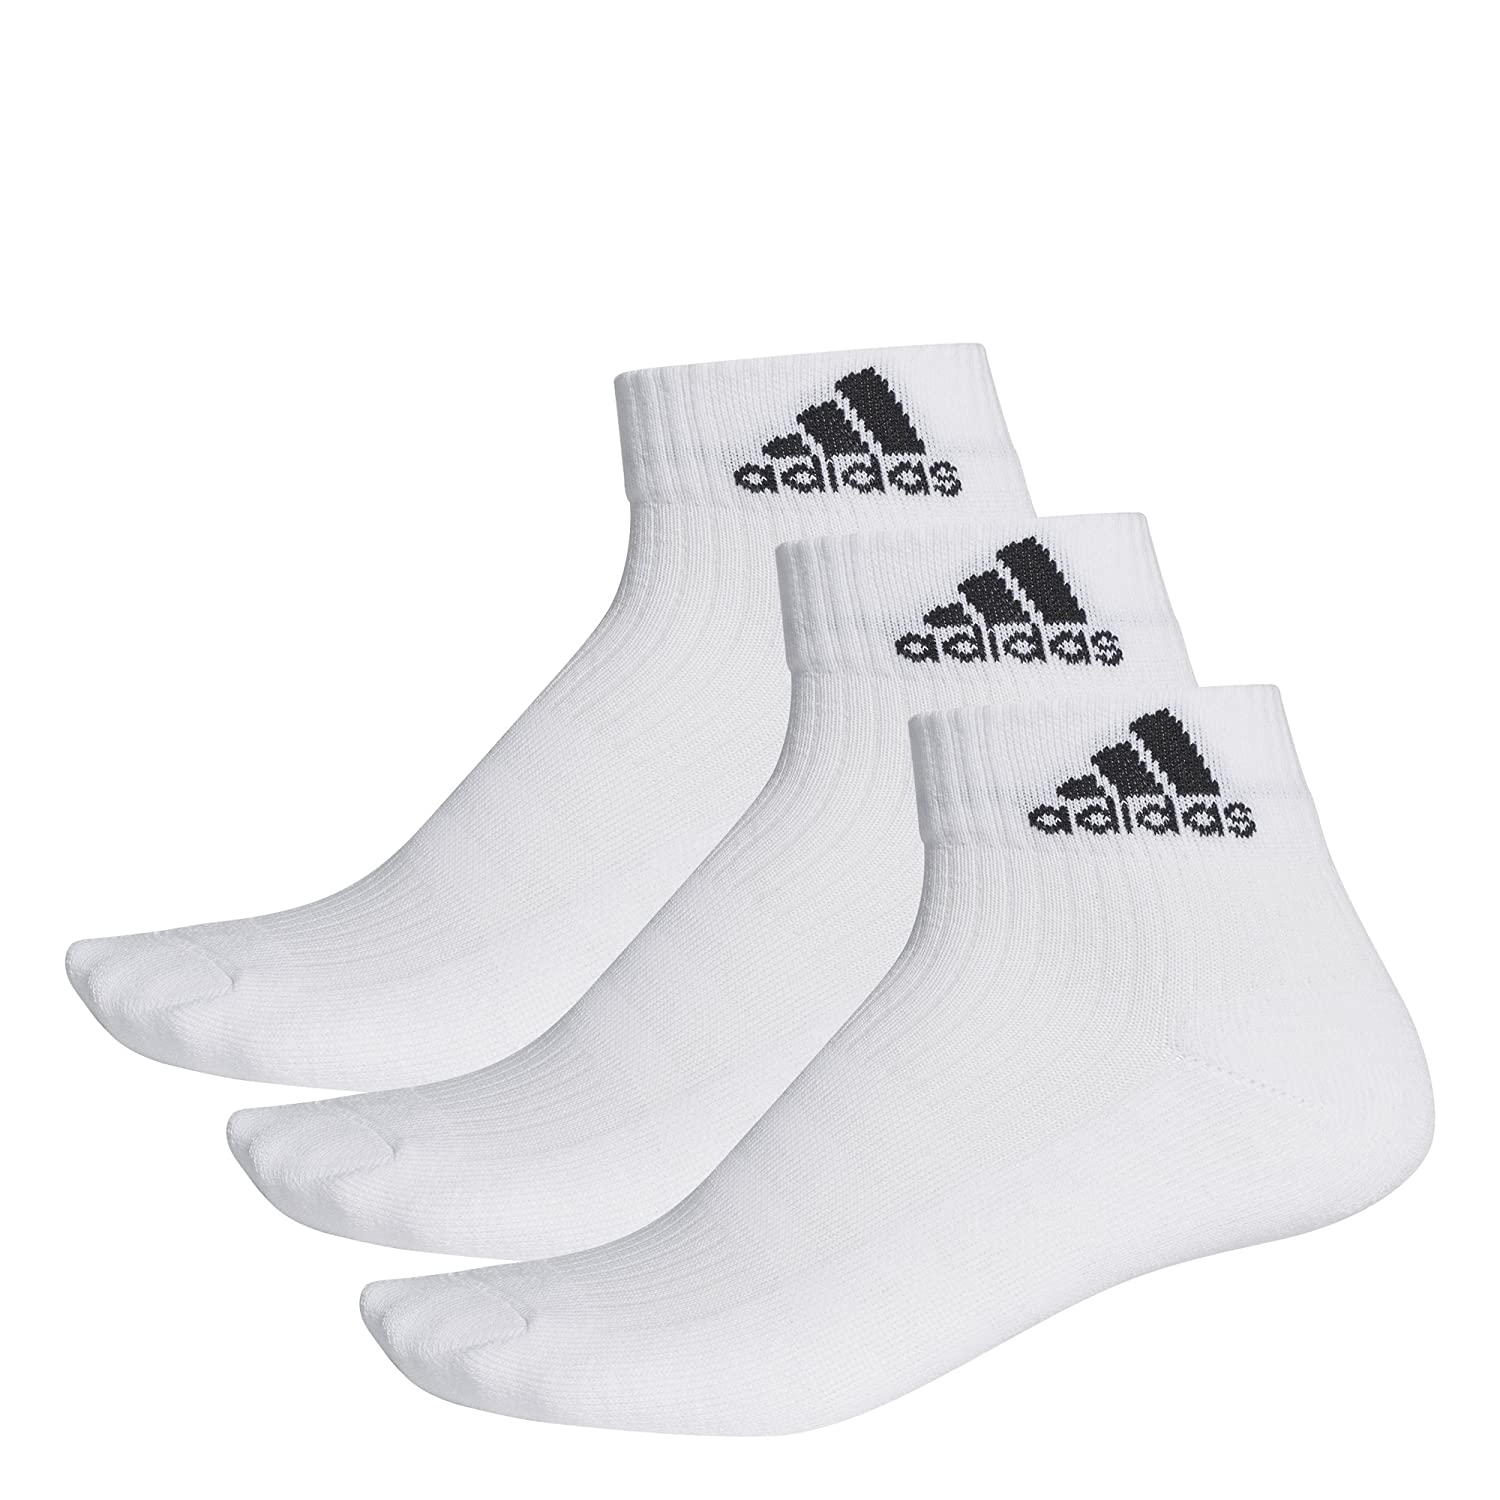 adidas Unisex 3-Stripes Performance Ankle Socks (Pack of 3 Pairs) 888590063120